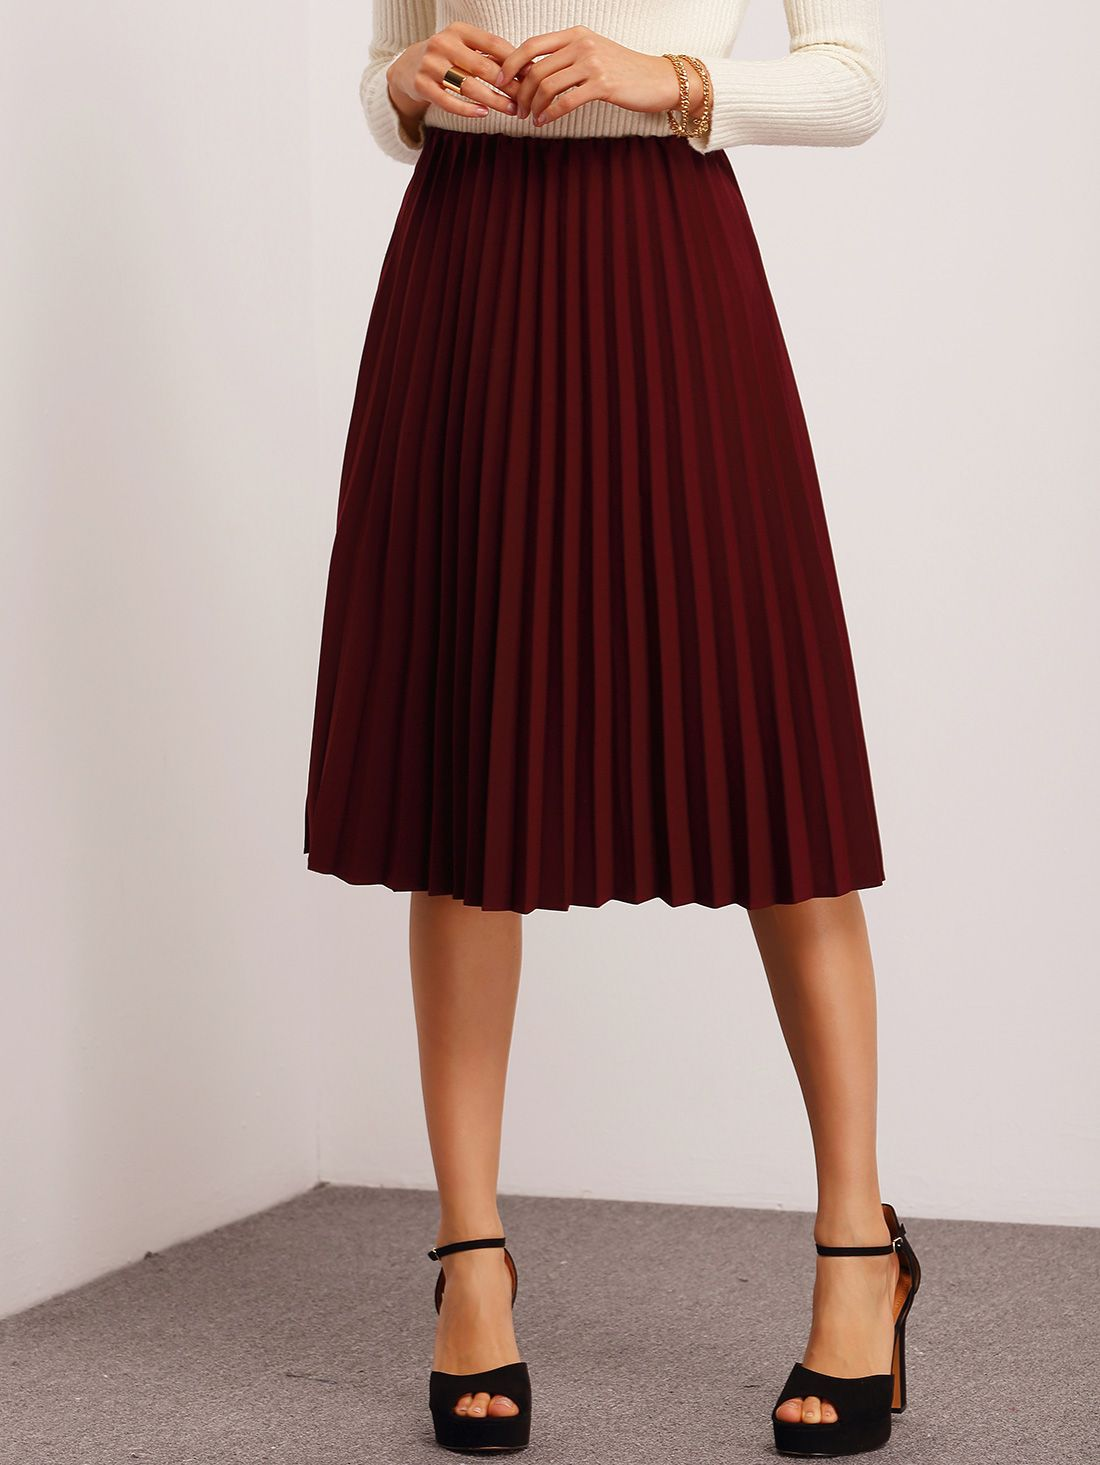 d4d93e85c2 Shop Burgundy Pleated Midi Skirt online. SheIn offers Burgundy Pleated Midi  Skirt & more to fit your fashionable needs.